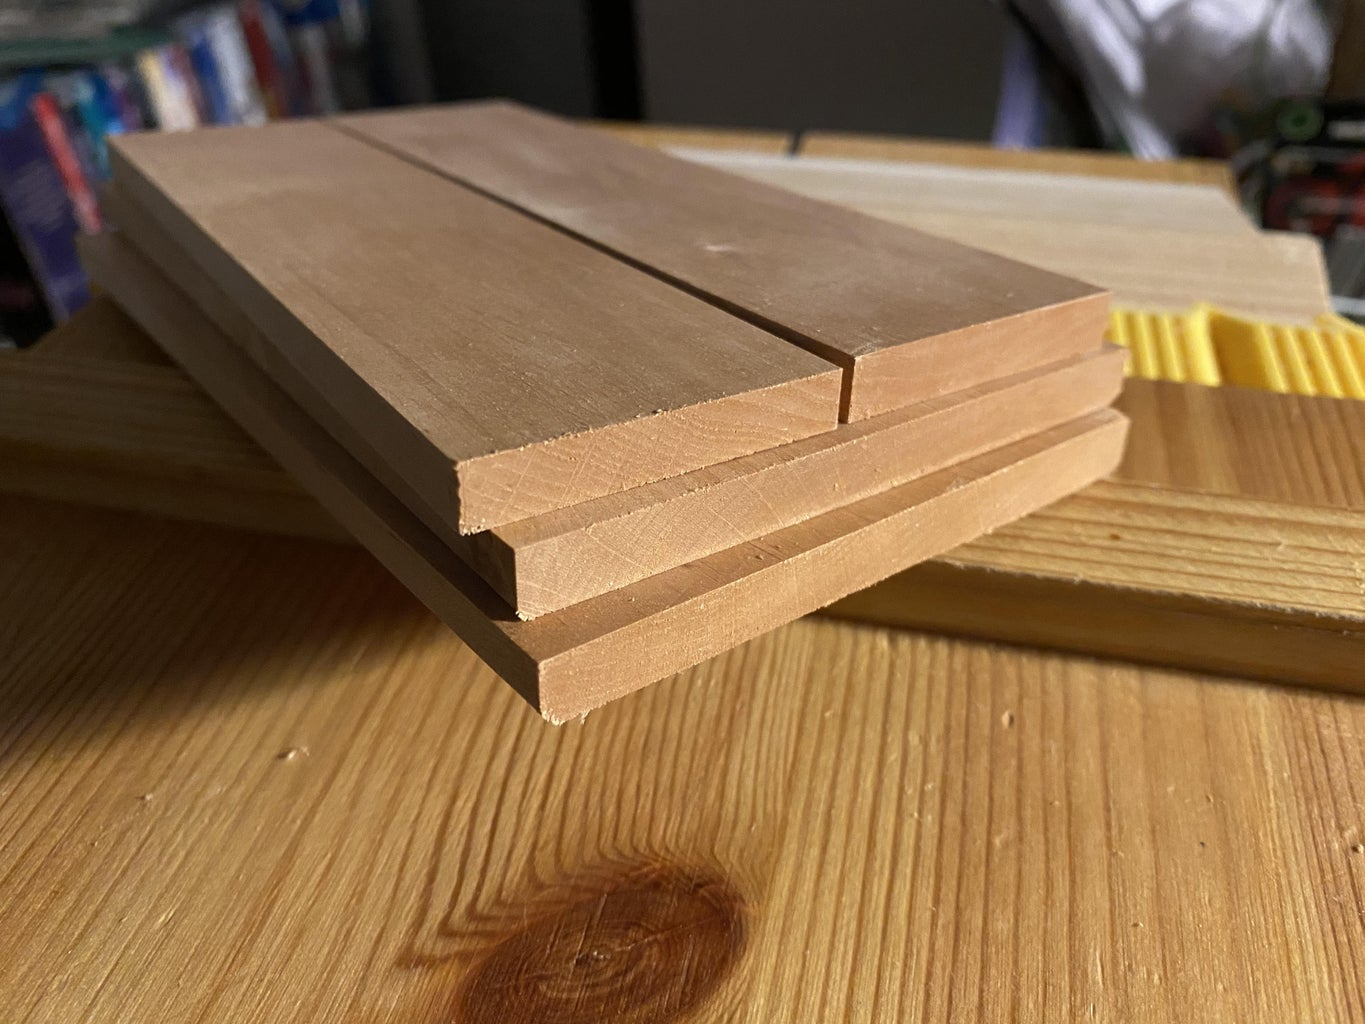 Flattening, Squaring, and Ripping the Lumber